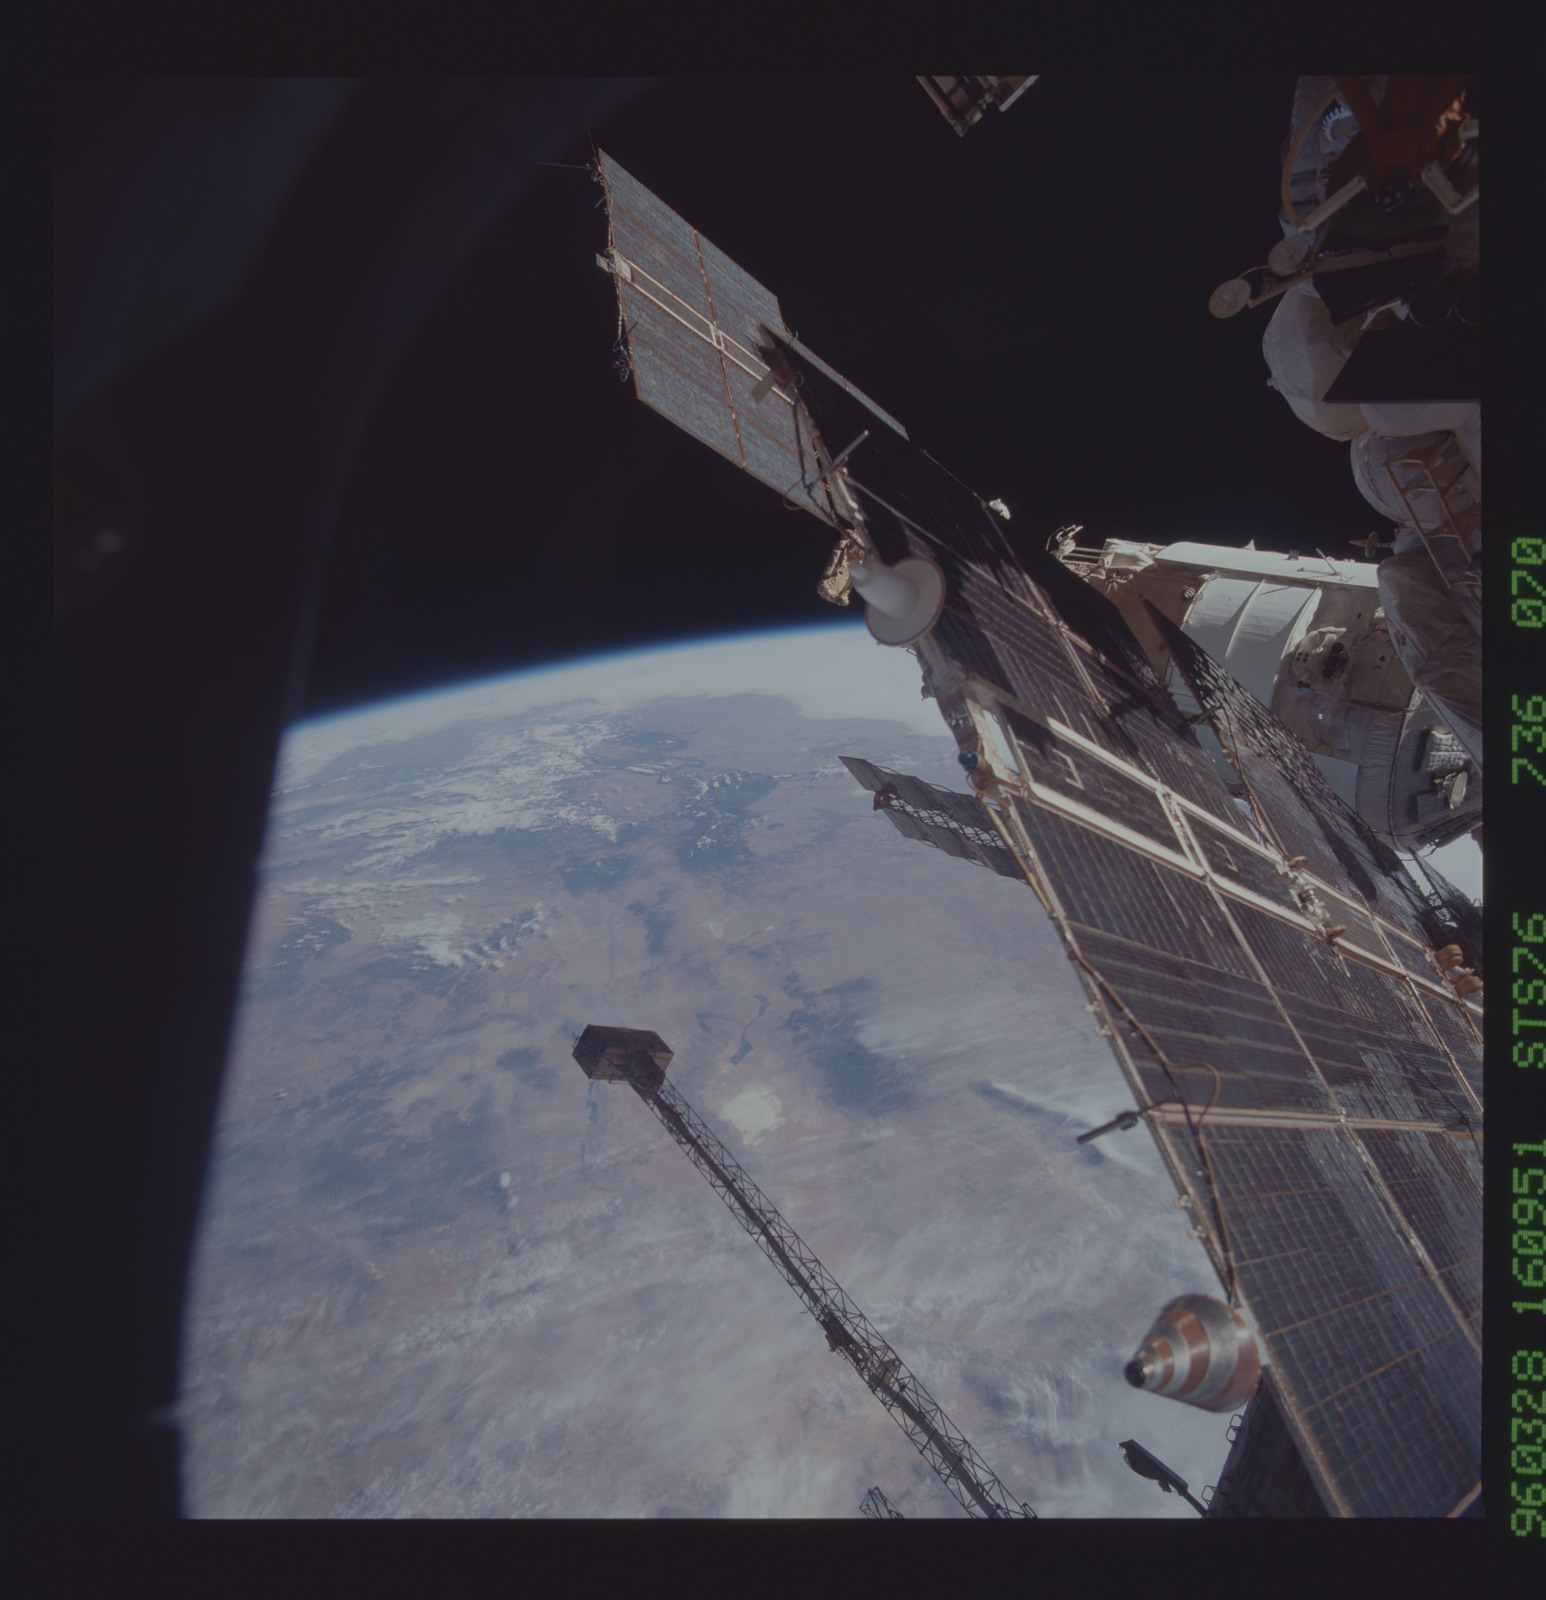 STS076-736-070 - STS-076 - Mir Space Station views taken during STS-76 mission